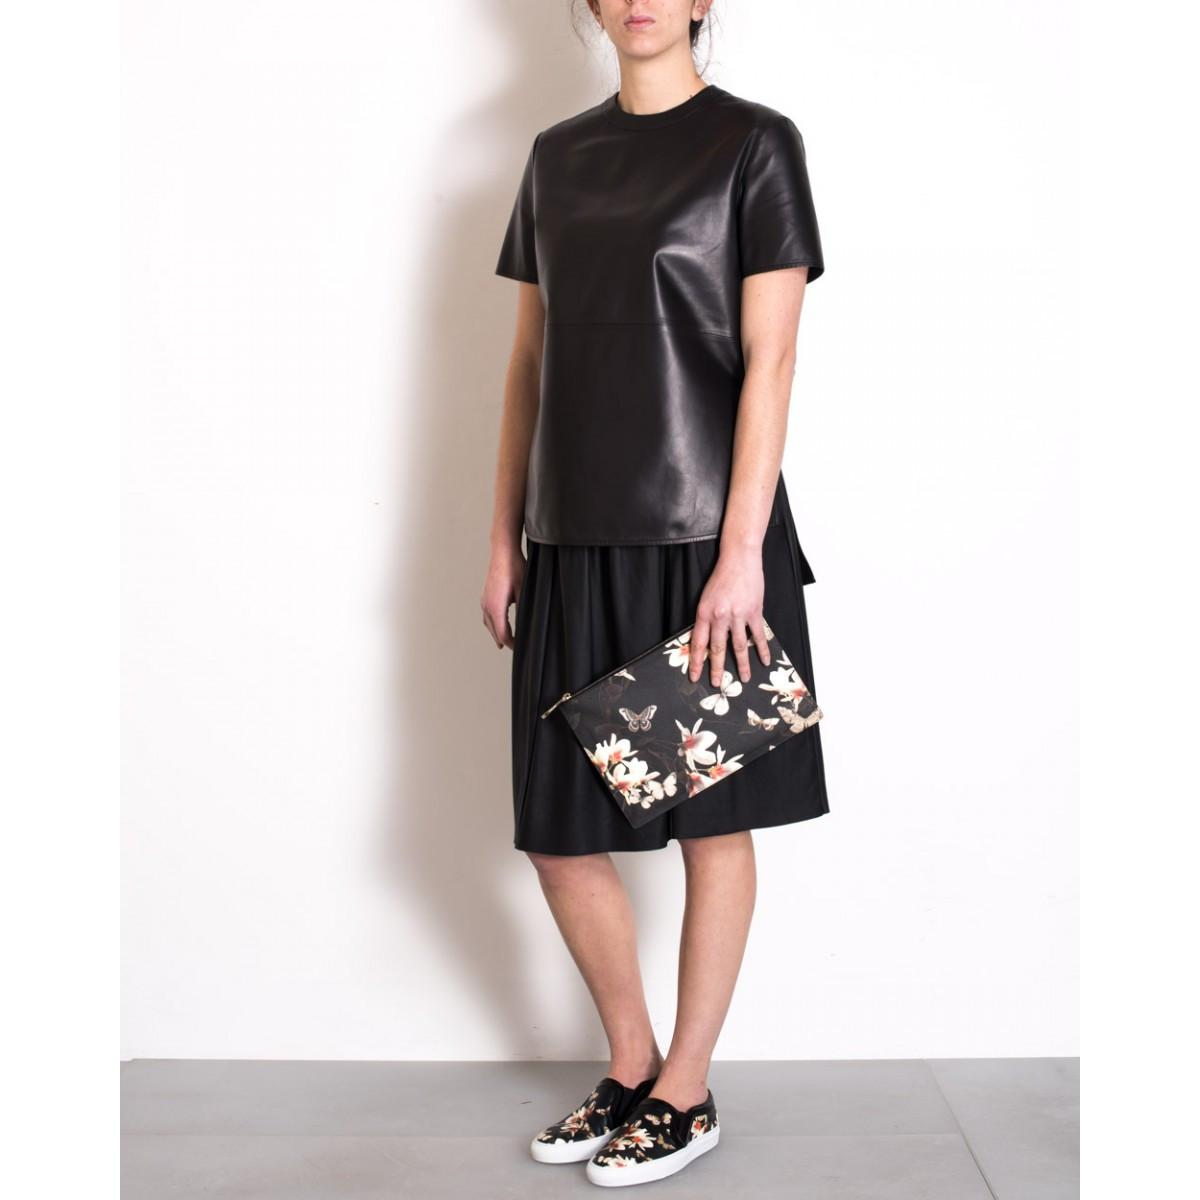 Givenchy Iconic Print Clutch Floral Multicolour Height